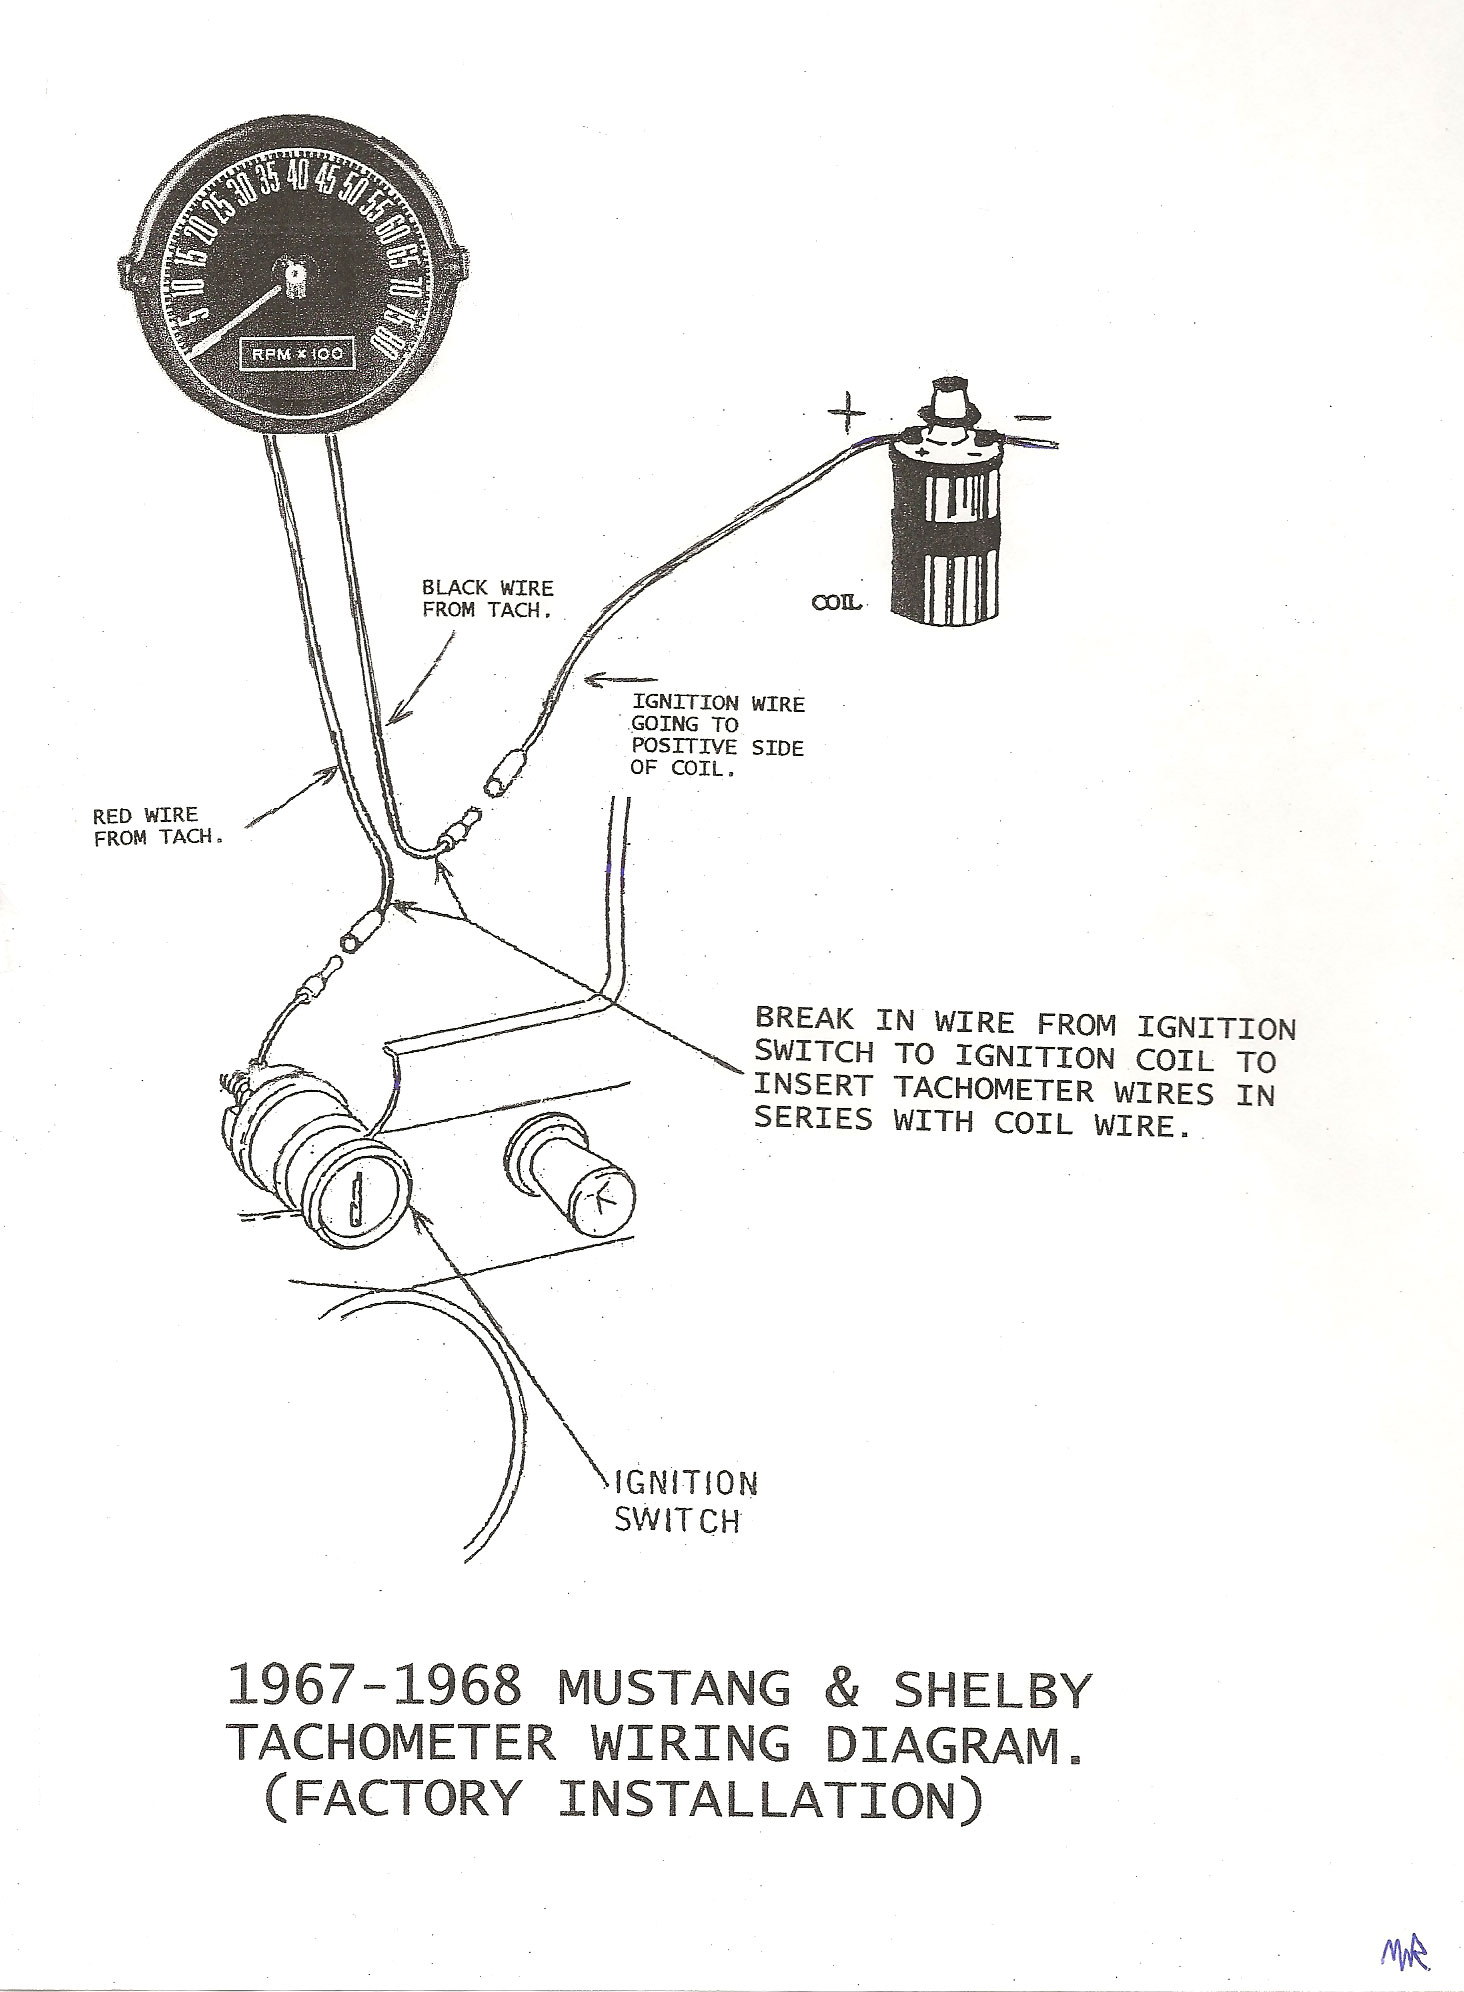 Amp Meter Wiring Diagram 1966 Mustang Good 1st Alternator Tachometer Todays Rh 10 7 1813weddingbarn Com Ford